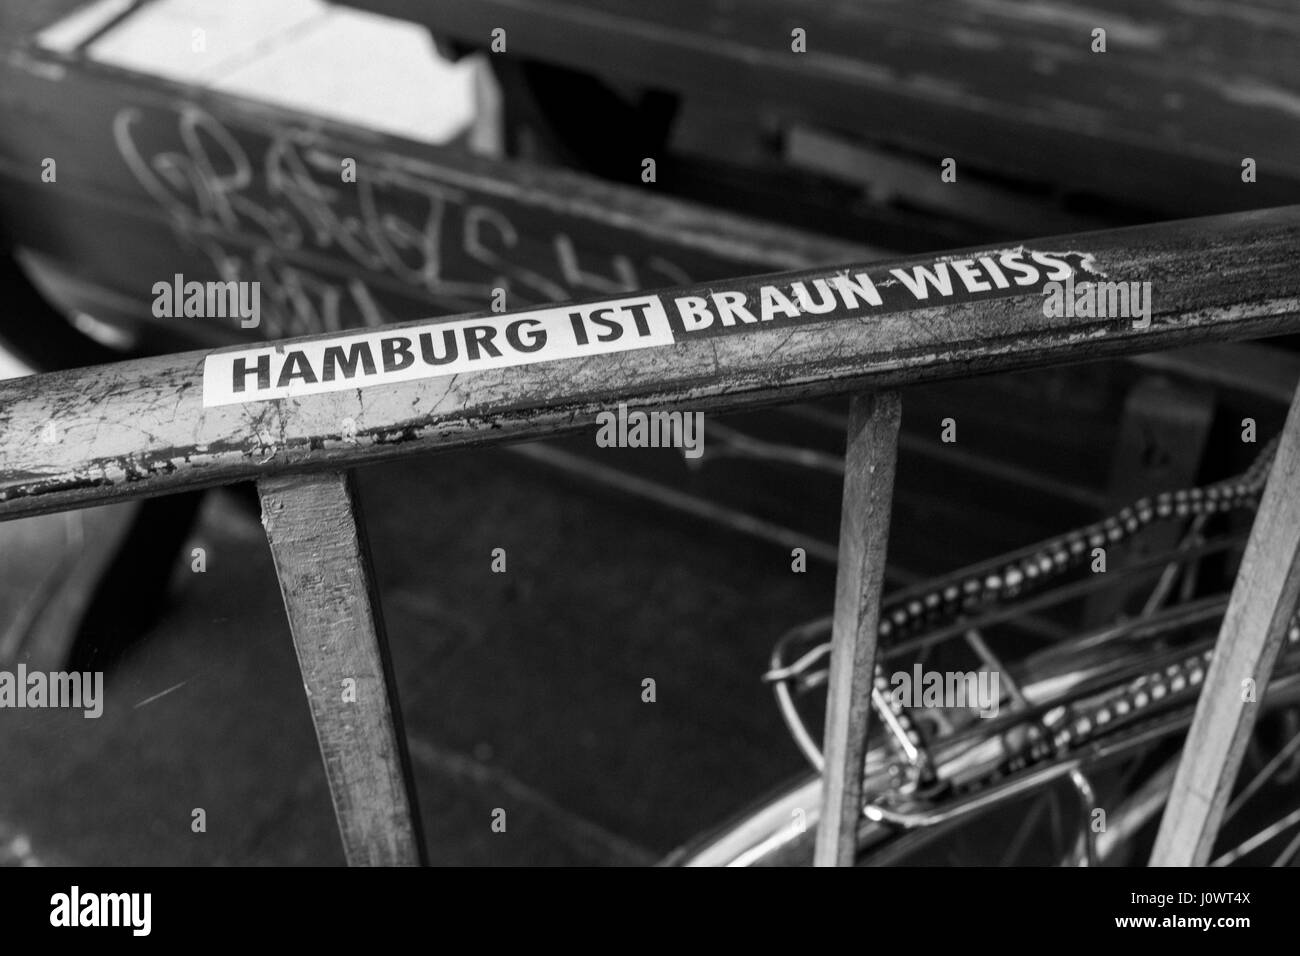 Sticker reading 'Hamburg ist Braun-Weiss' (Hamburg is brown and white) stuck to railings. - Stock Image